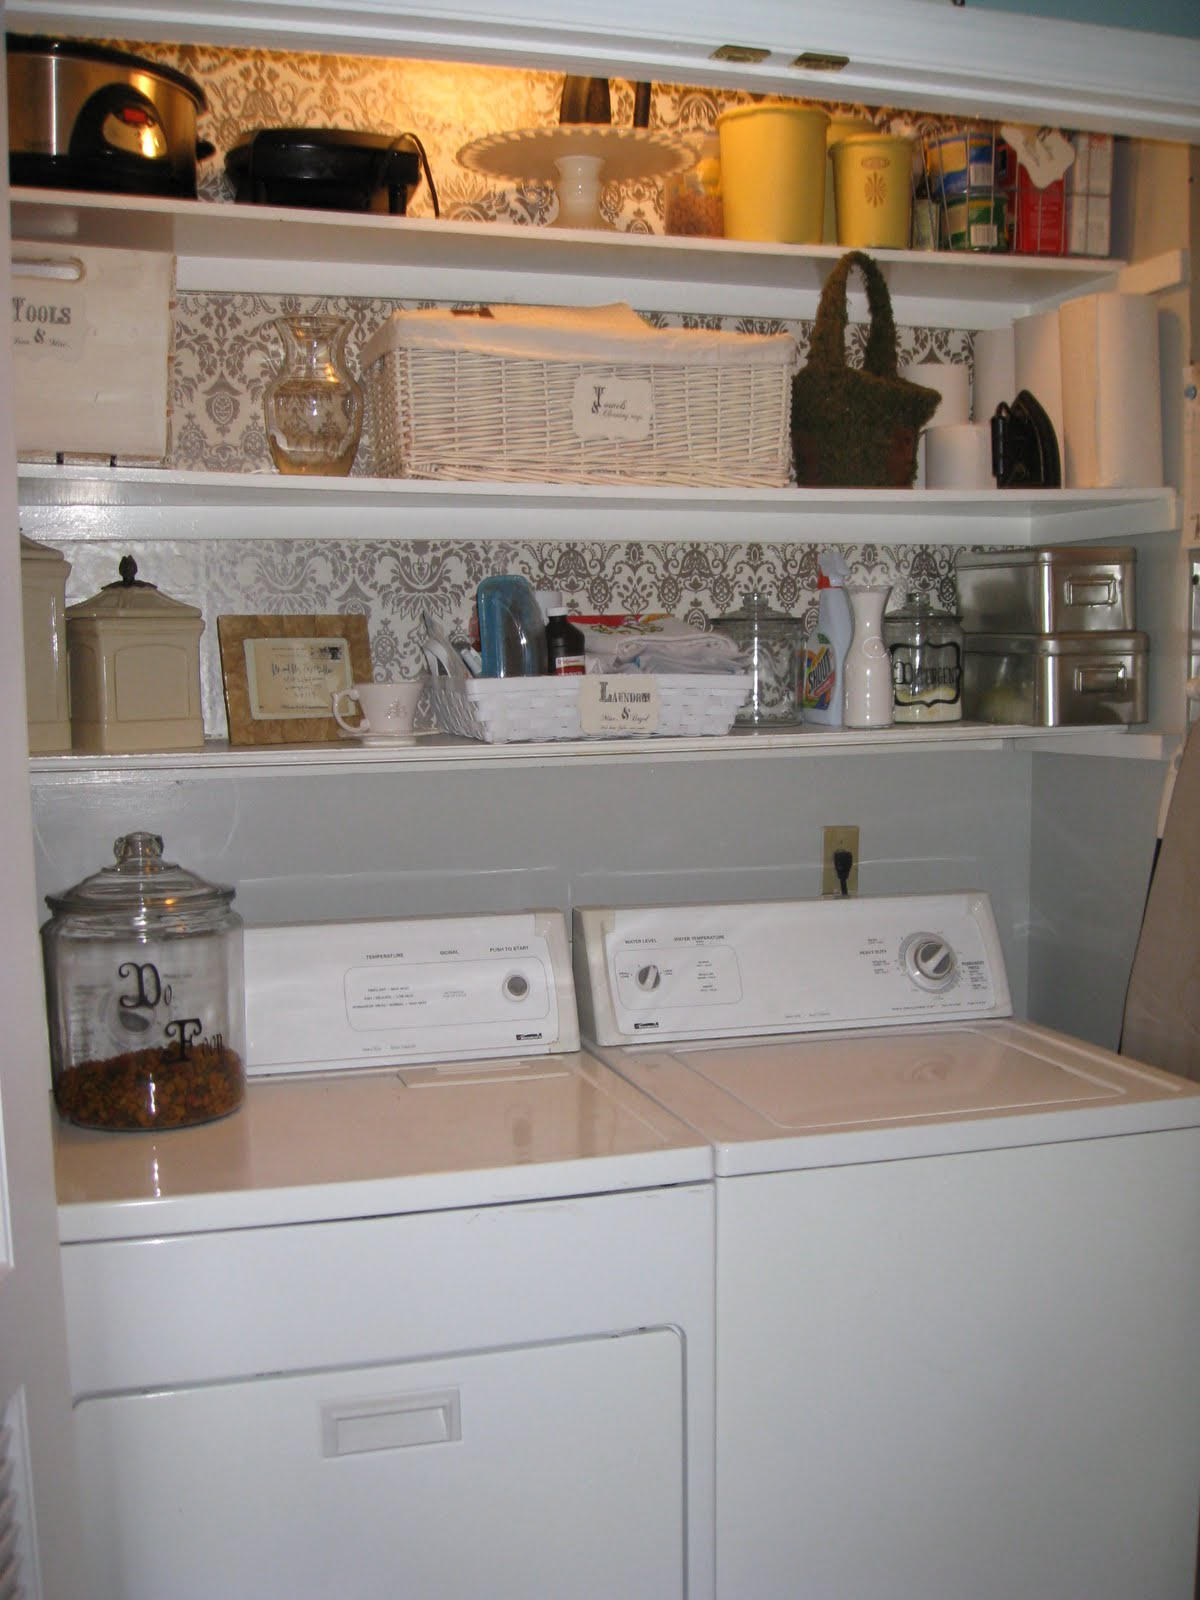 Amazing Laundry Room Shelf Ideas With Wall Mounted Shelves And Decorative Elements Together Stunning Wallpaper